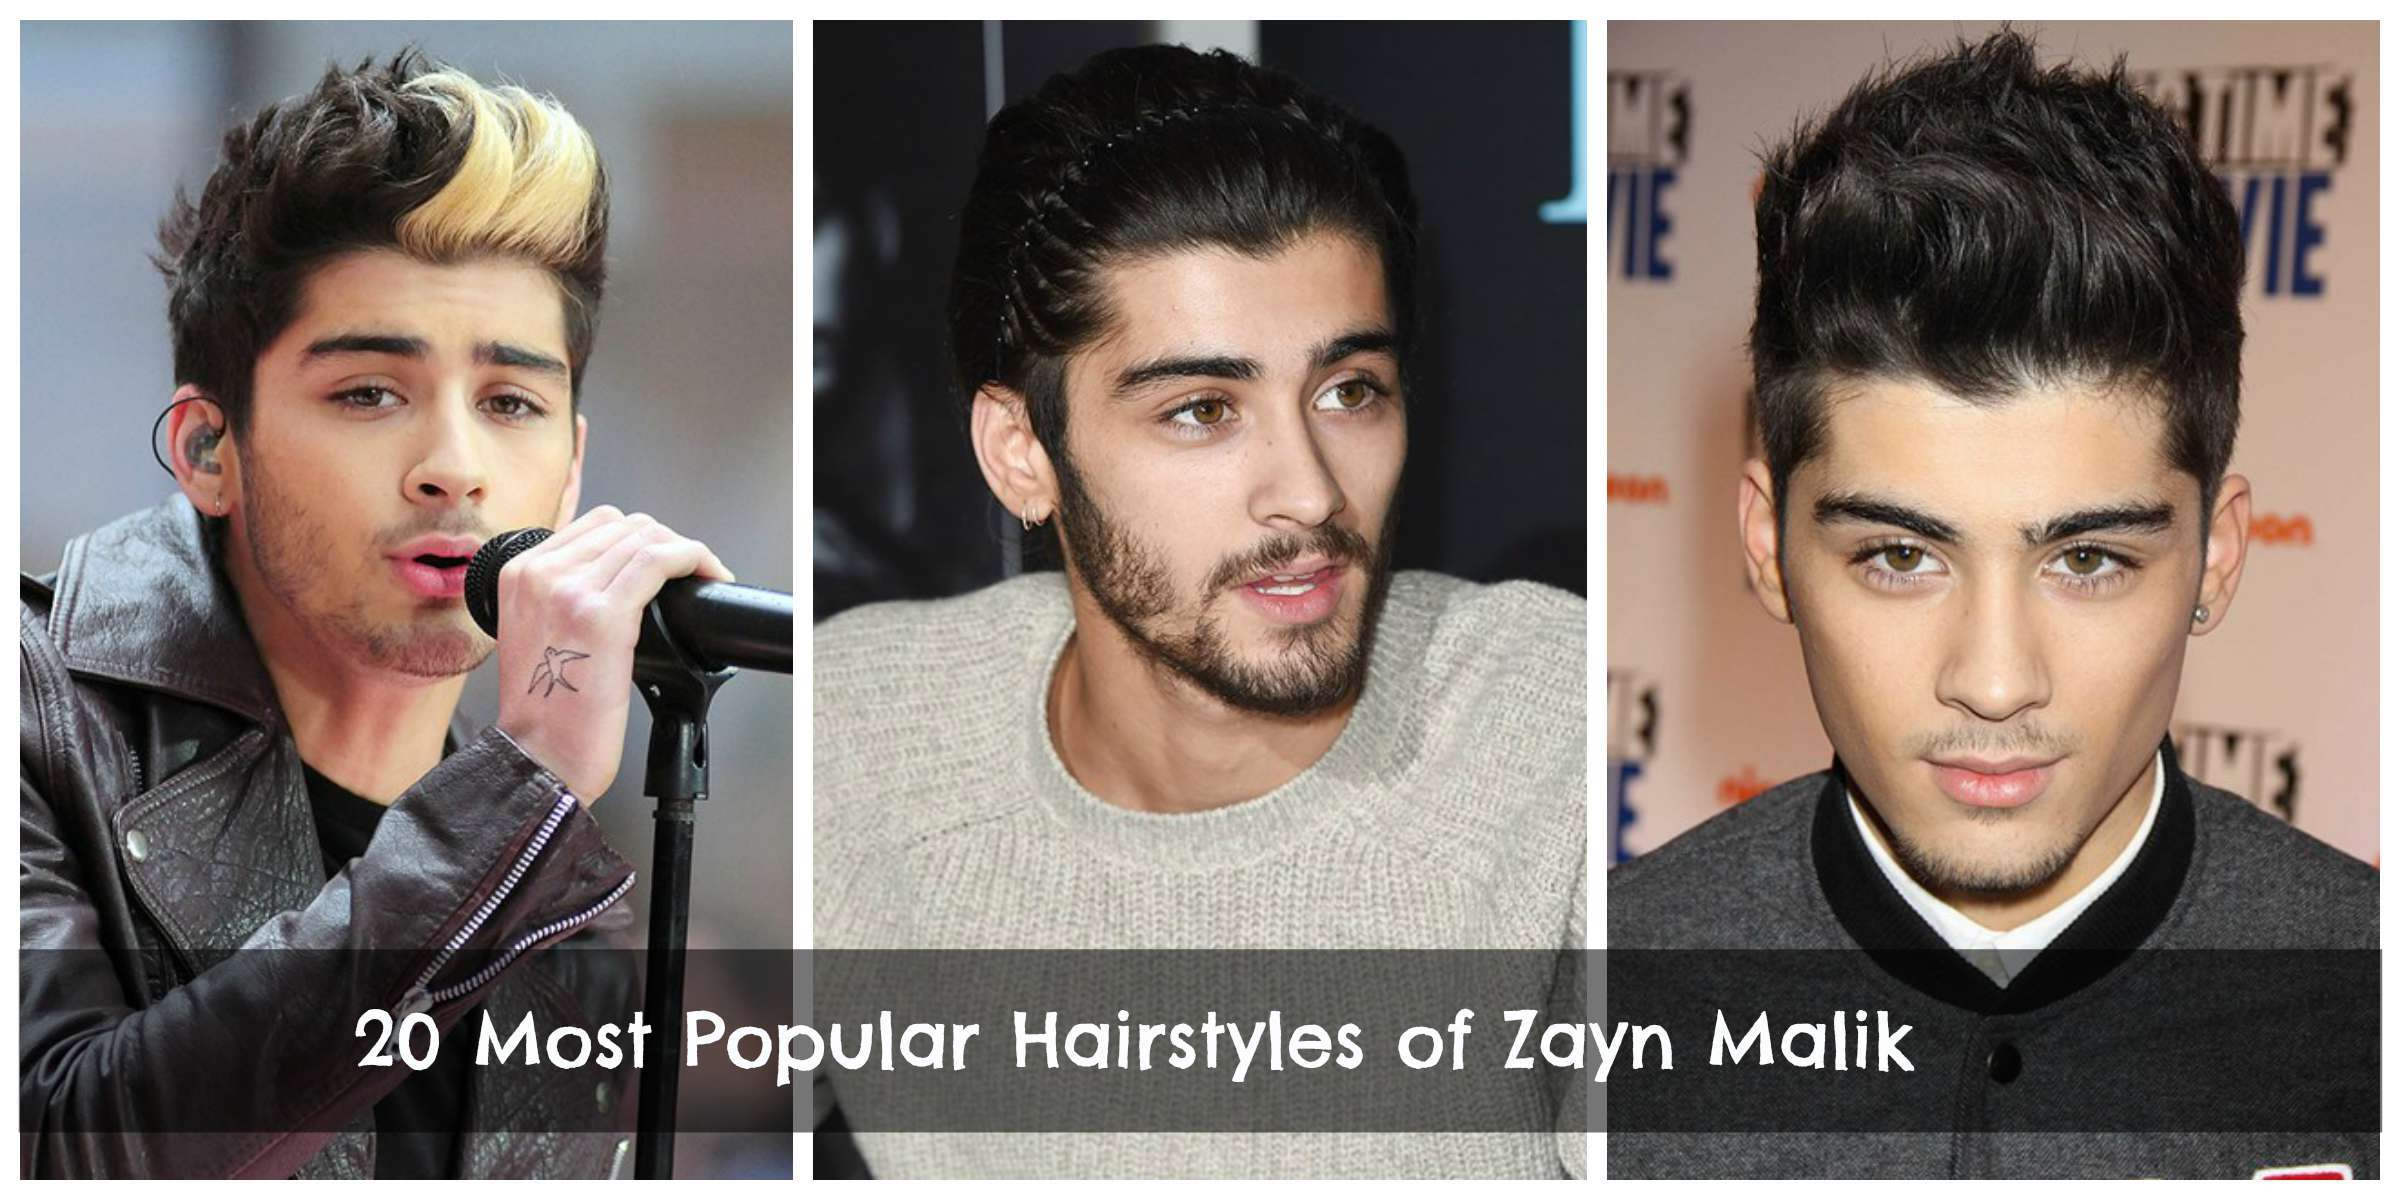 Zayn Malik Hairstyles 20 Best Hairstyles Of Zayn Malik All The Time